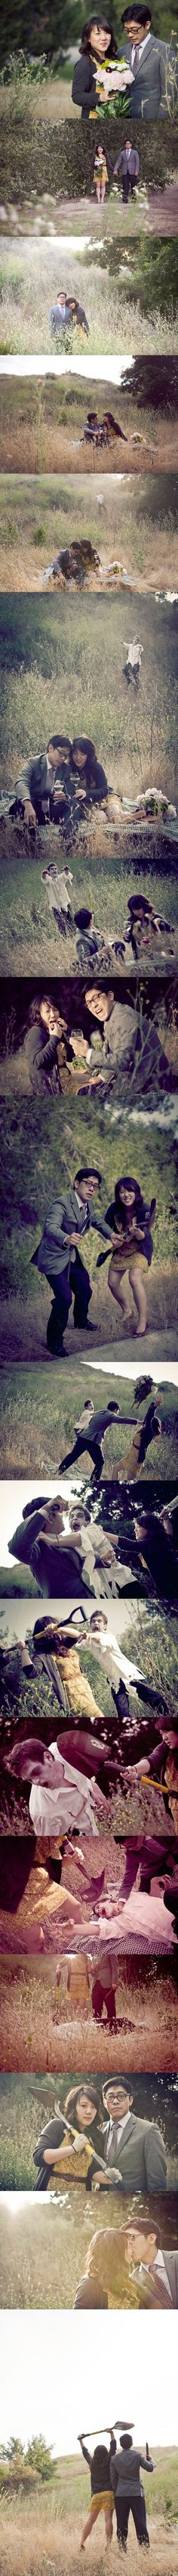 adorable and funny engagement pictures! #weddings #zombies